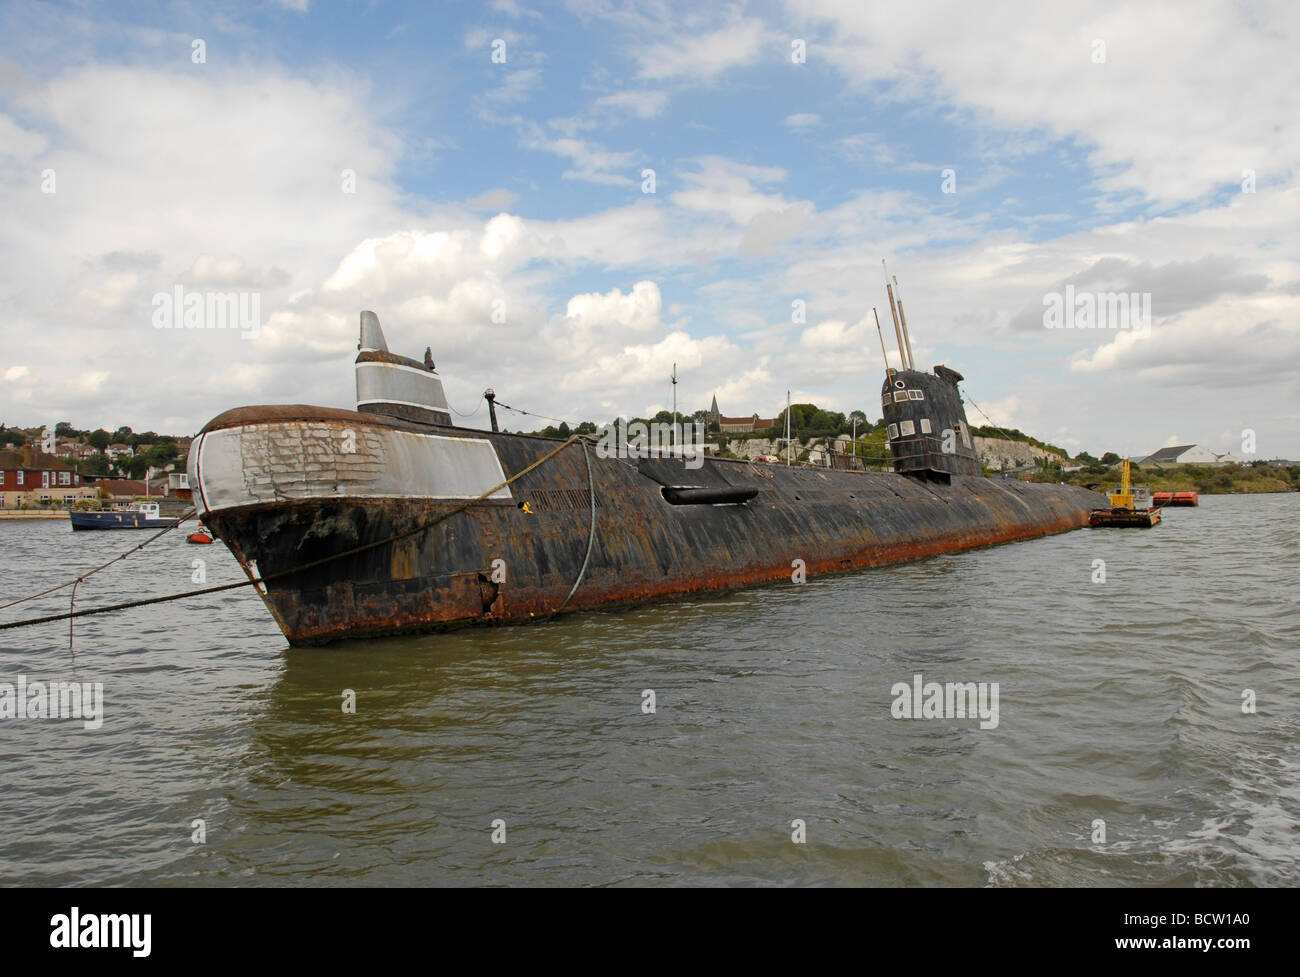 Derelict Russian submarine moored on river Medway, Rochesterr, Kent, England - Stock Image